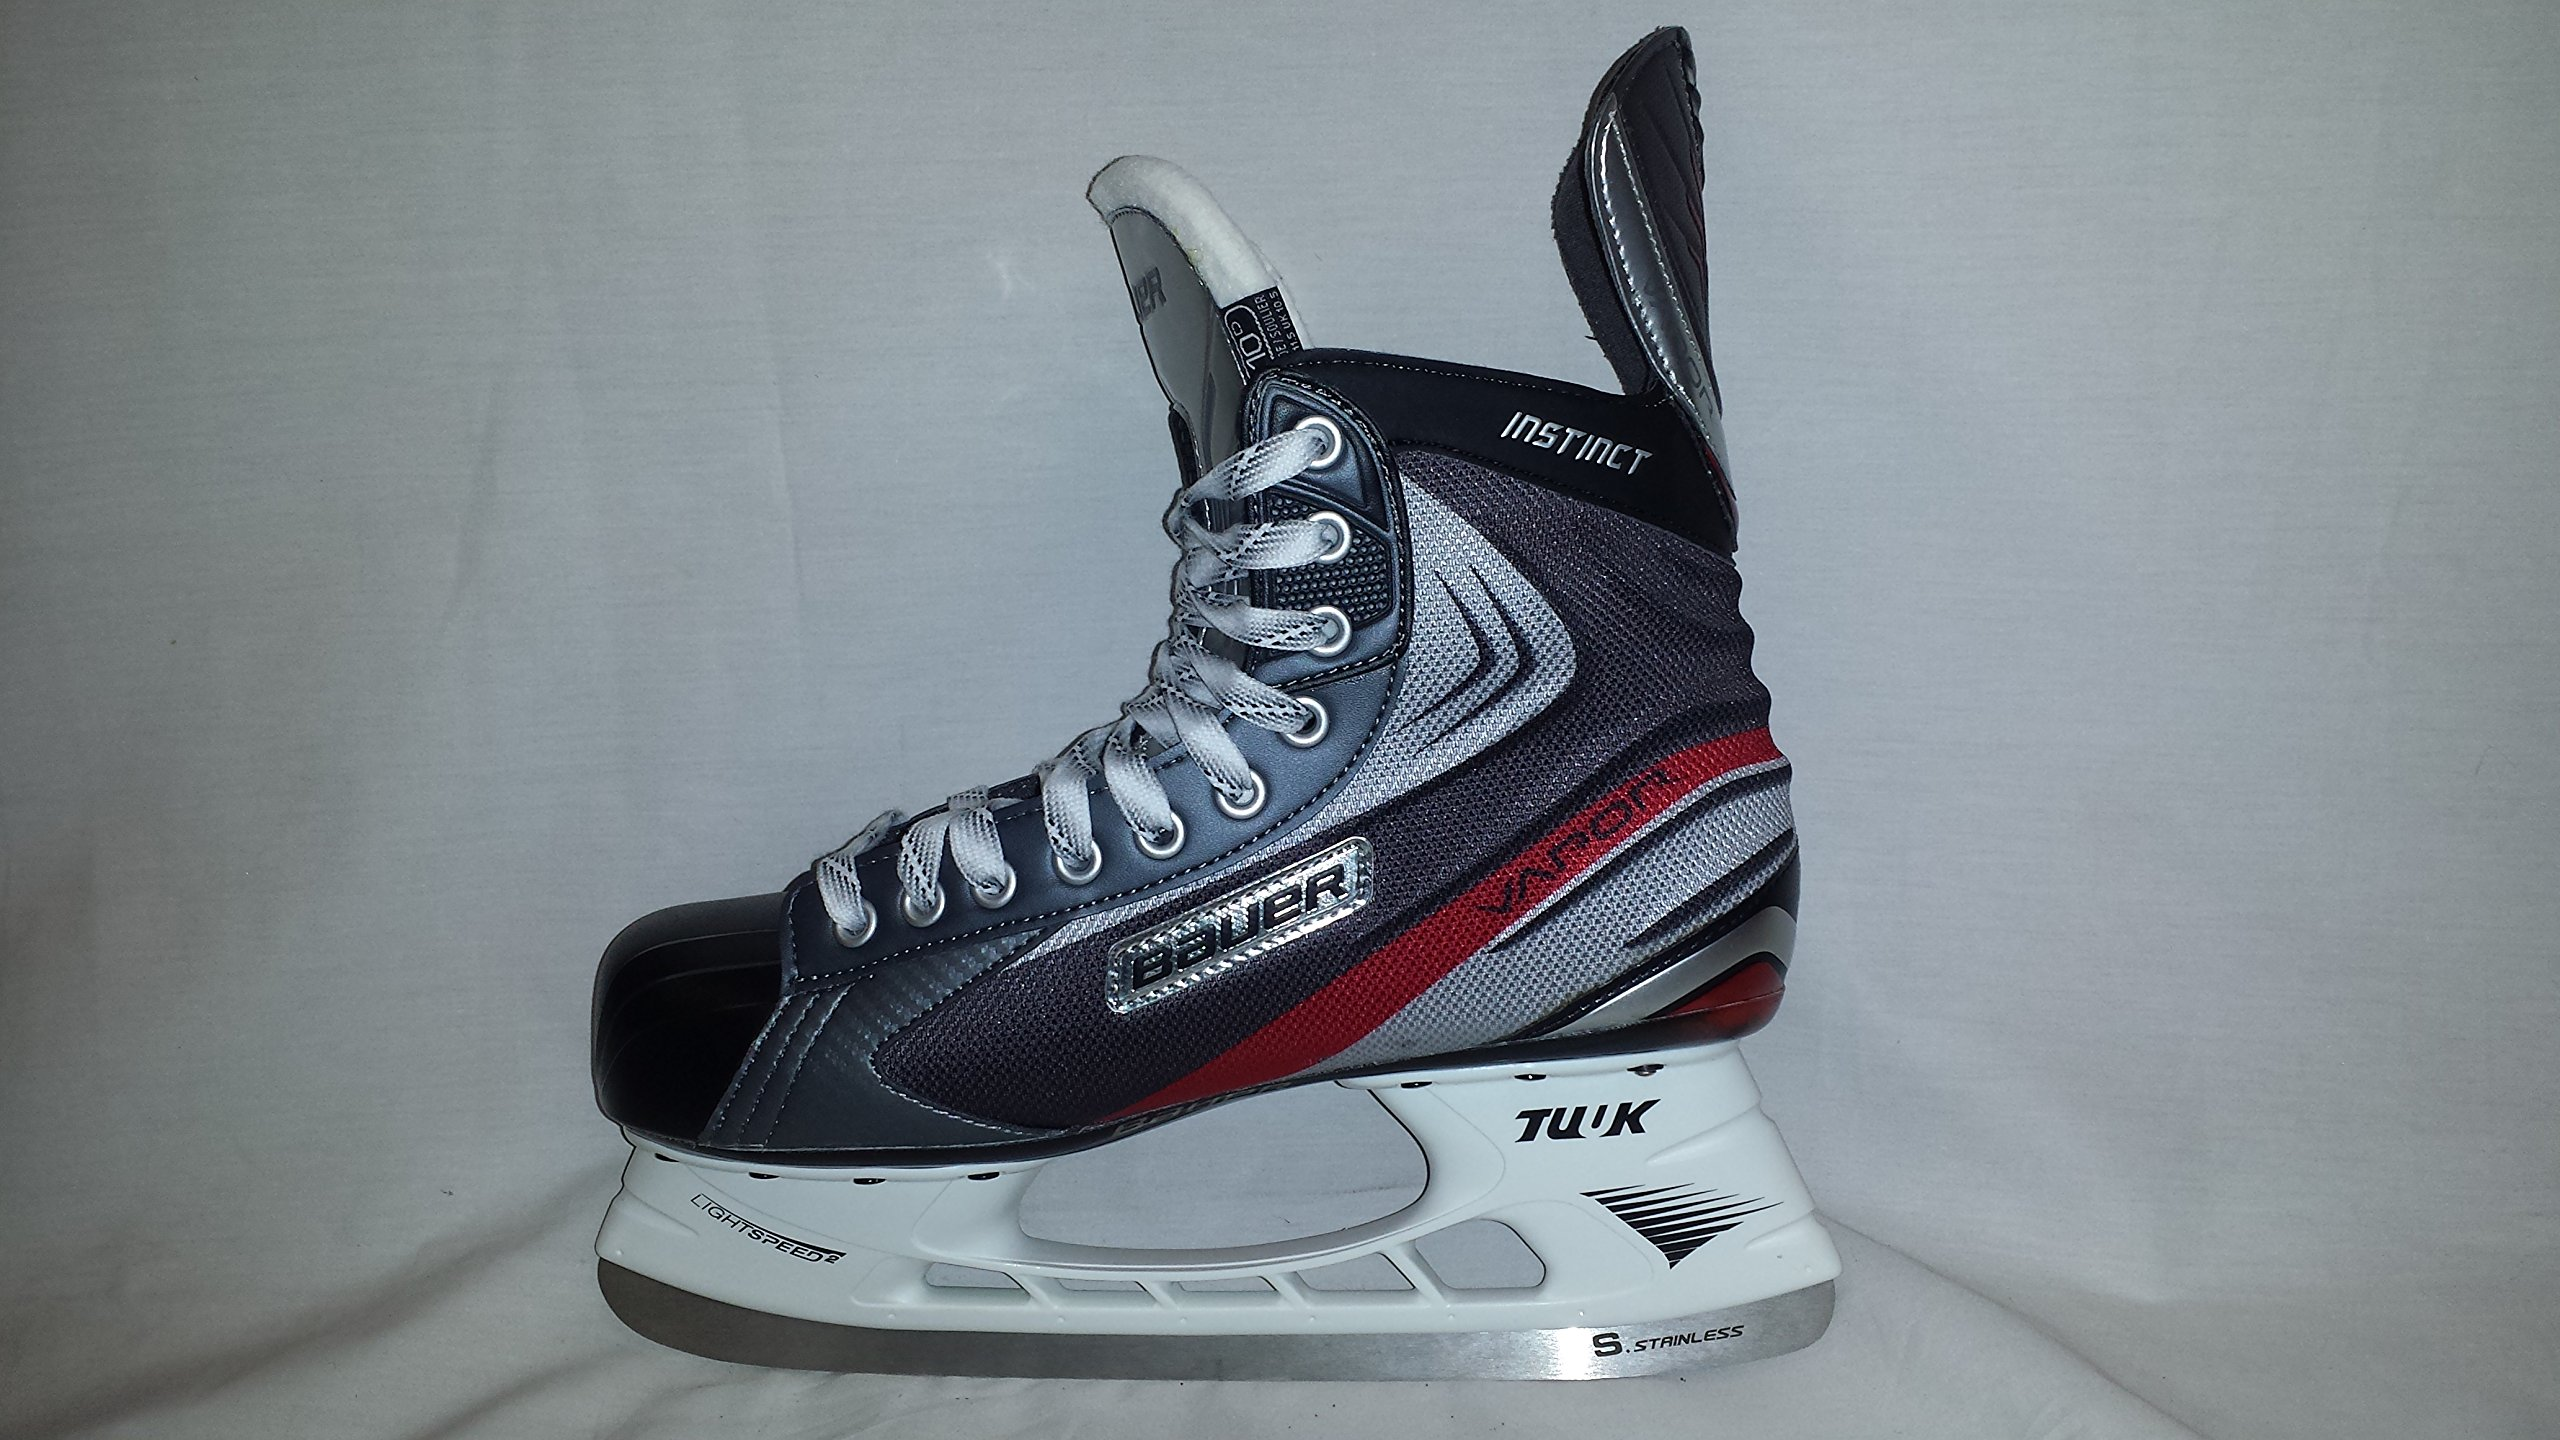 Bauer Vapor Instinct Junior Hockey Skates, Size 4 by Bauer